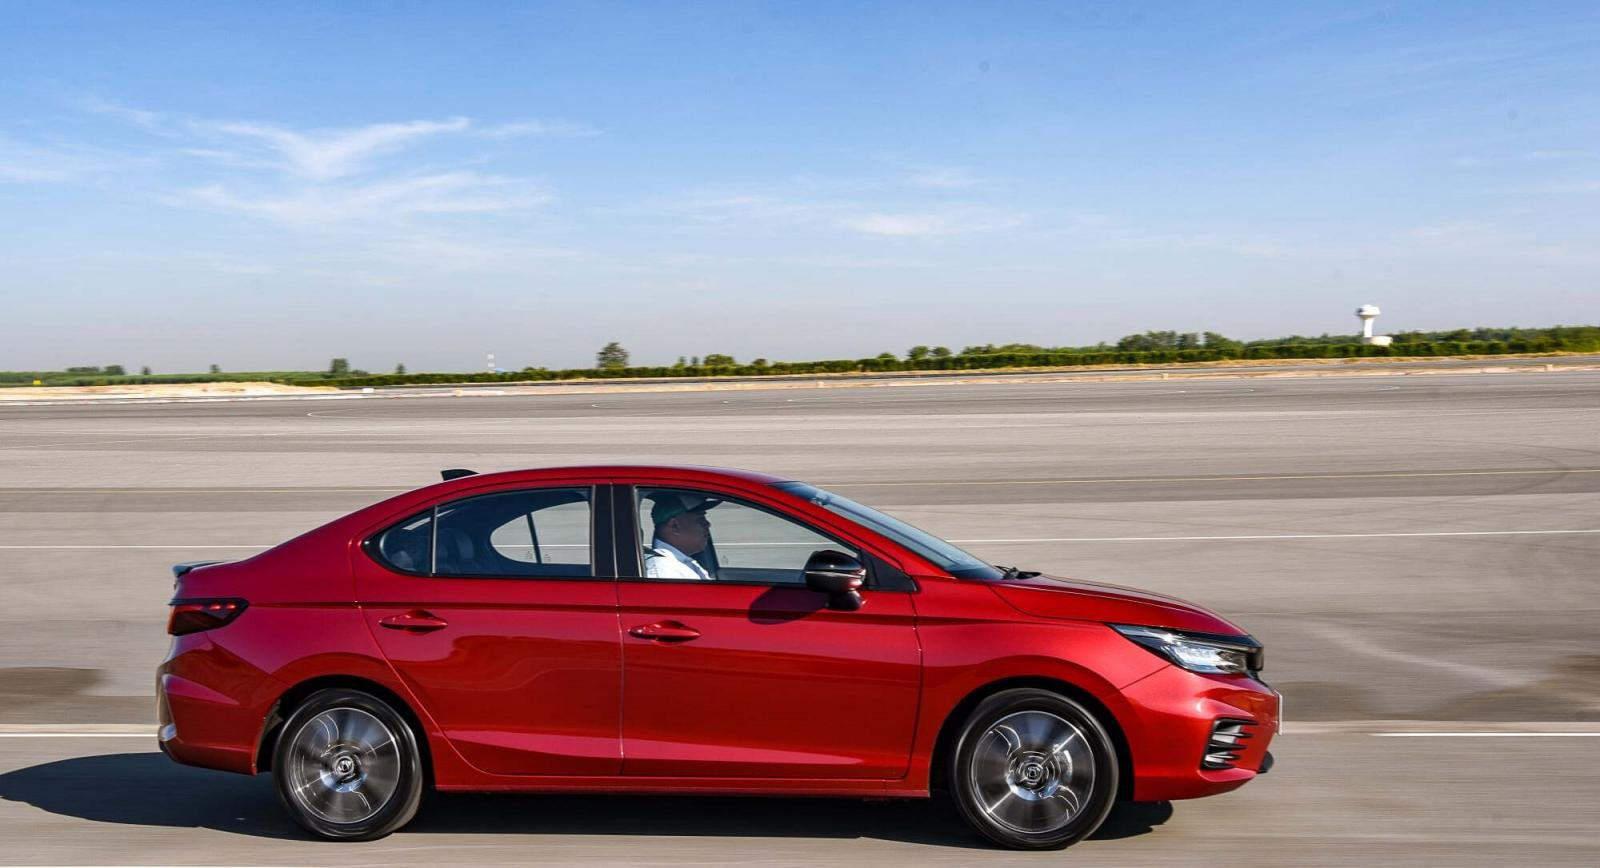 2020 Honda City Launch Could Delay As New Hyundai Verna Looks All Set to Launch on 26th